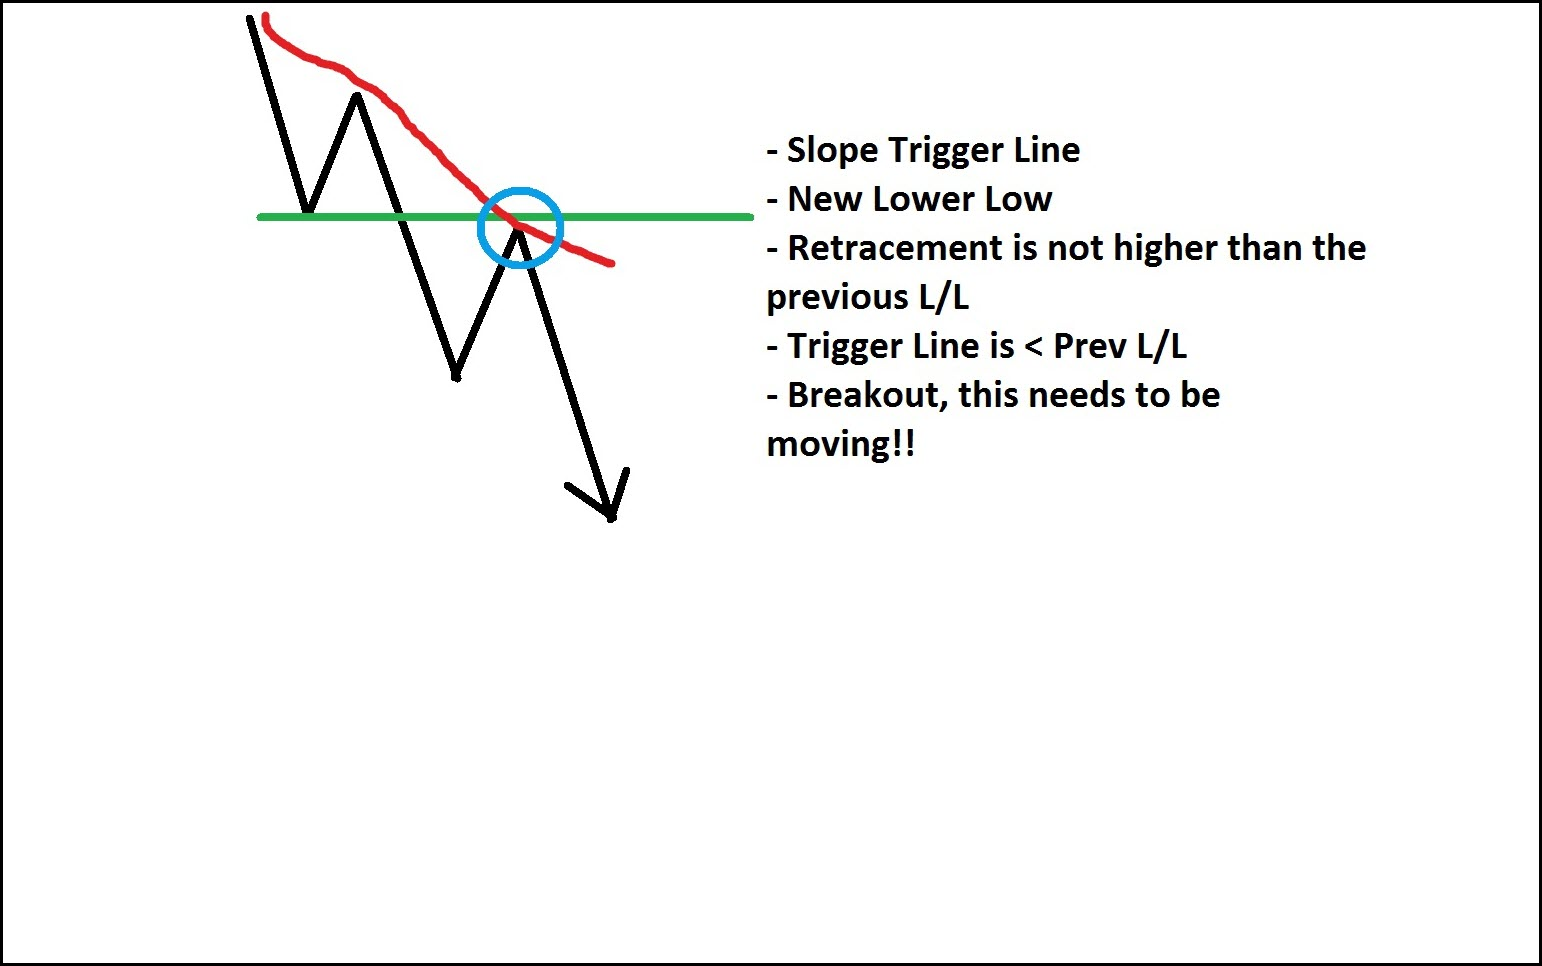 S&p day trading strategies